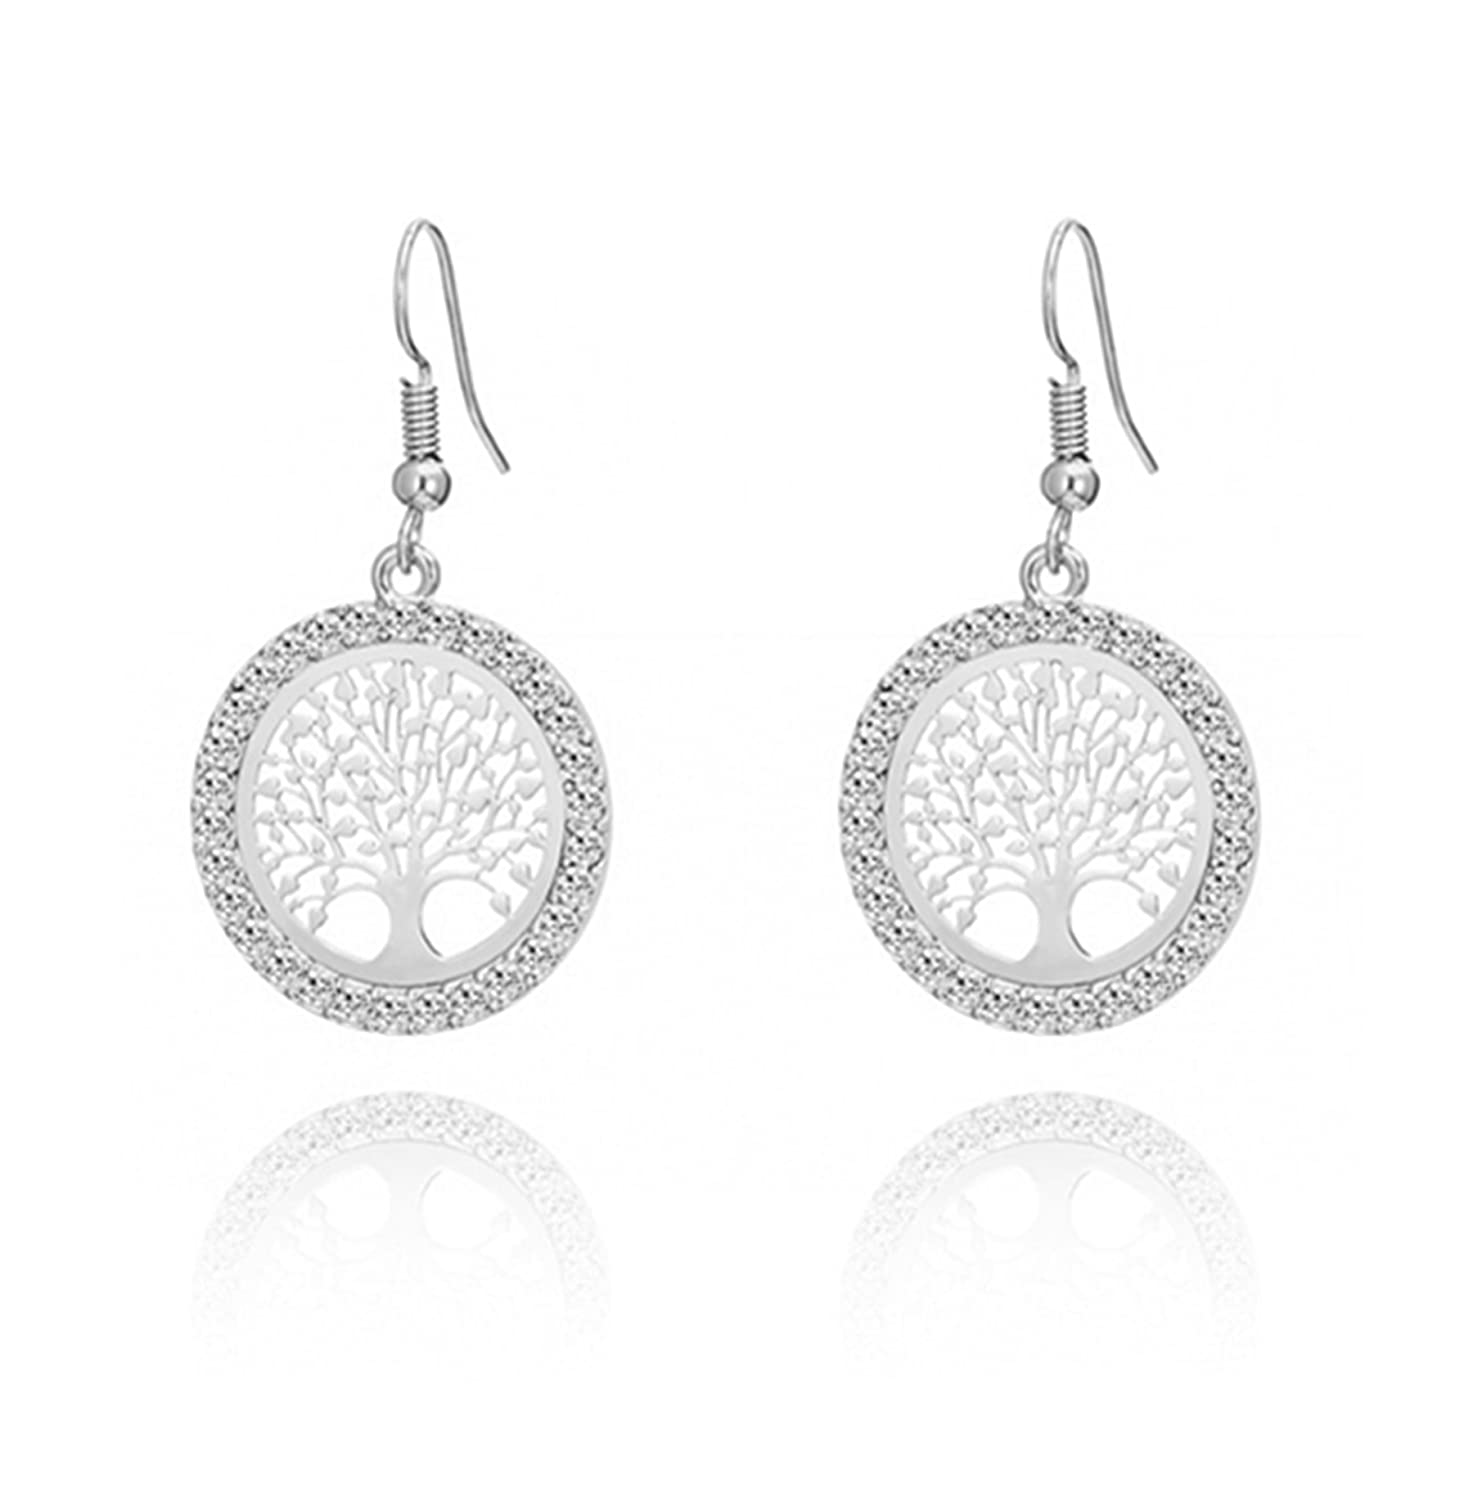 primerry Exquisite Creative Personality Tree of Life Fashion Rhinestone Alloy Ear Hook Earrings